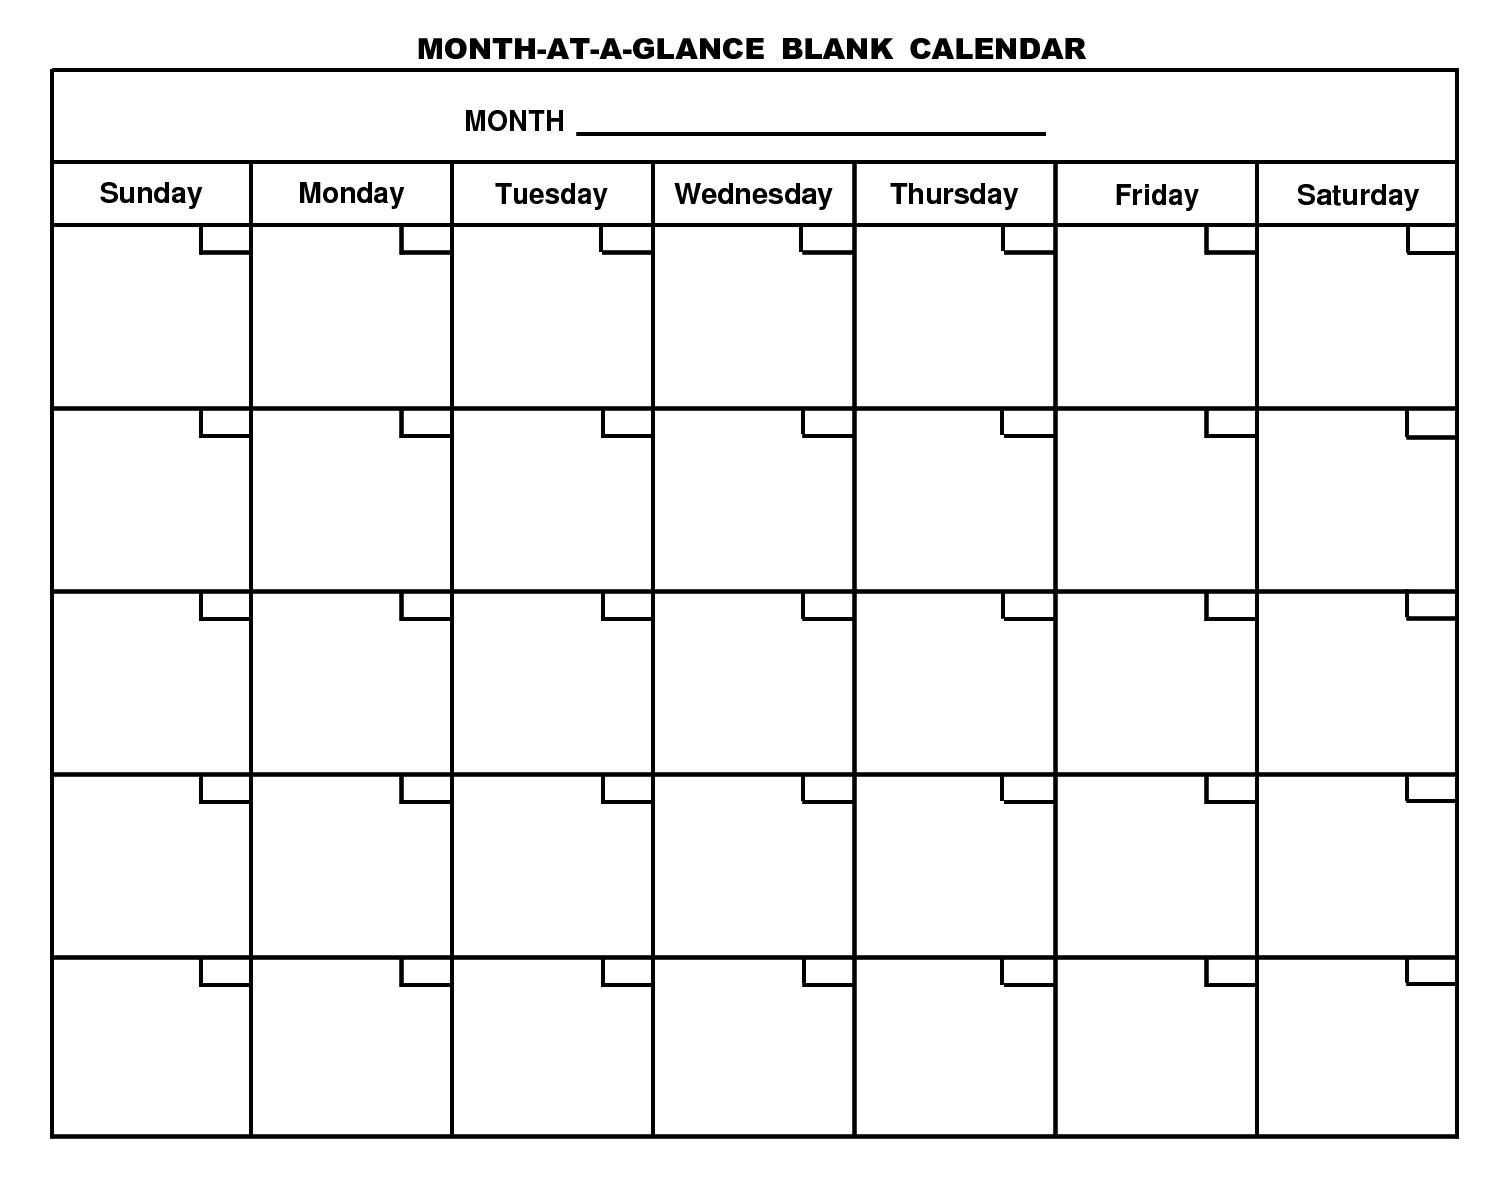 Month At A Glance Blank Calendar   Monthly Printable Calender Throughout Month At A Glance Blank Calendar Template